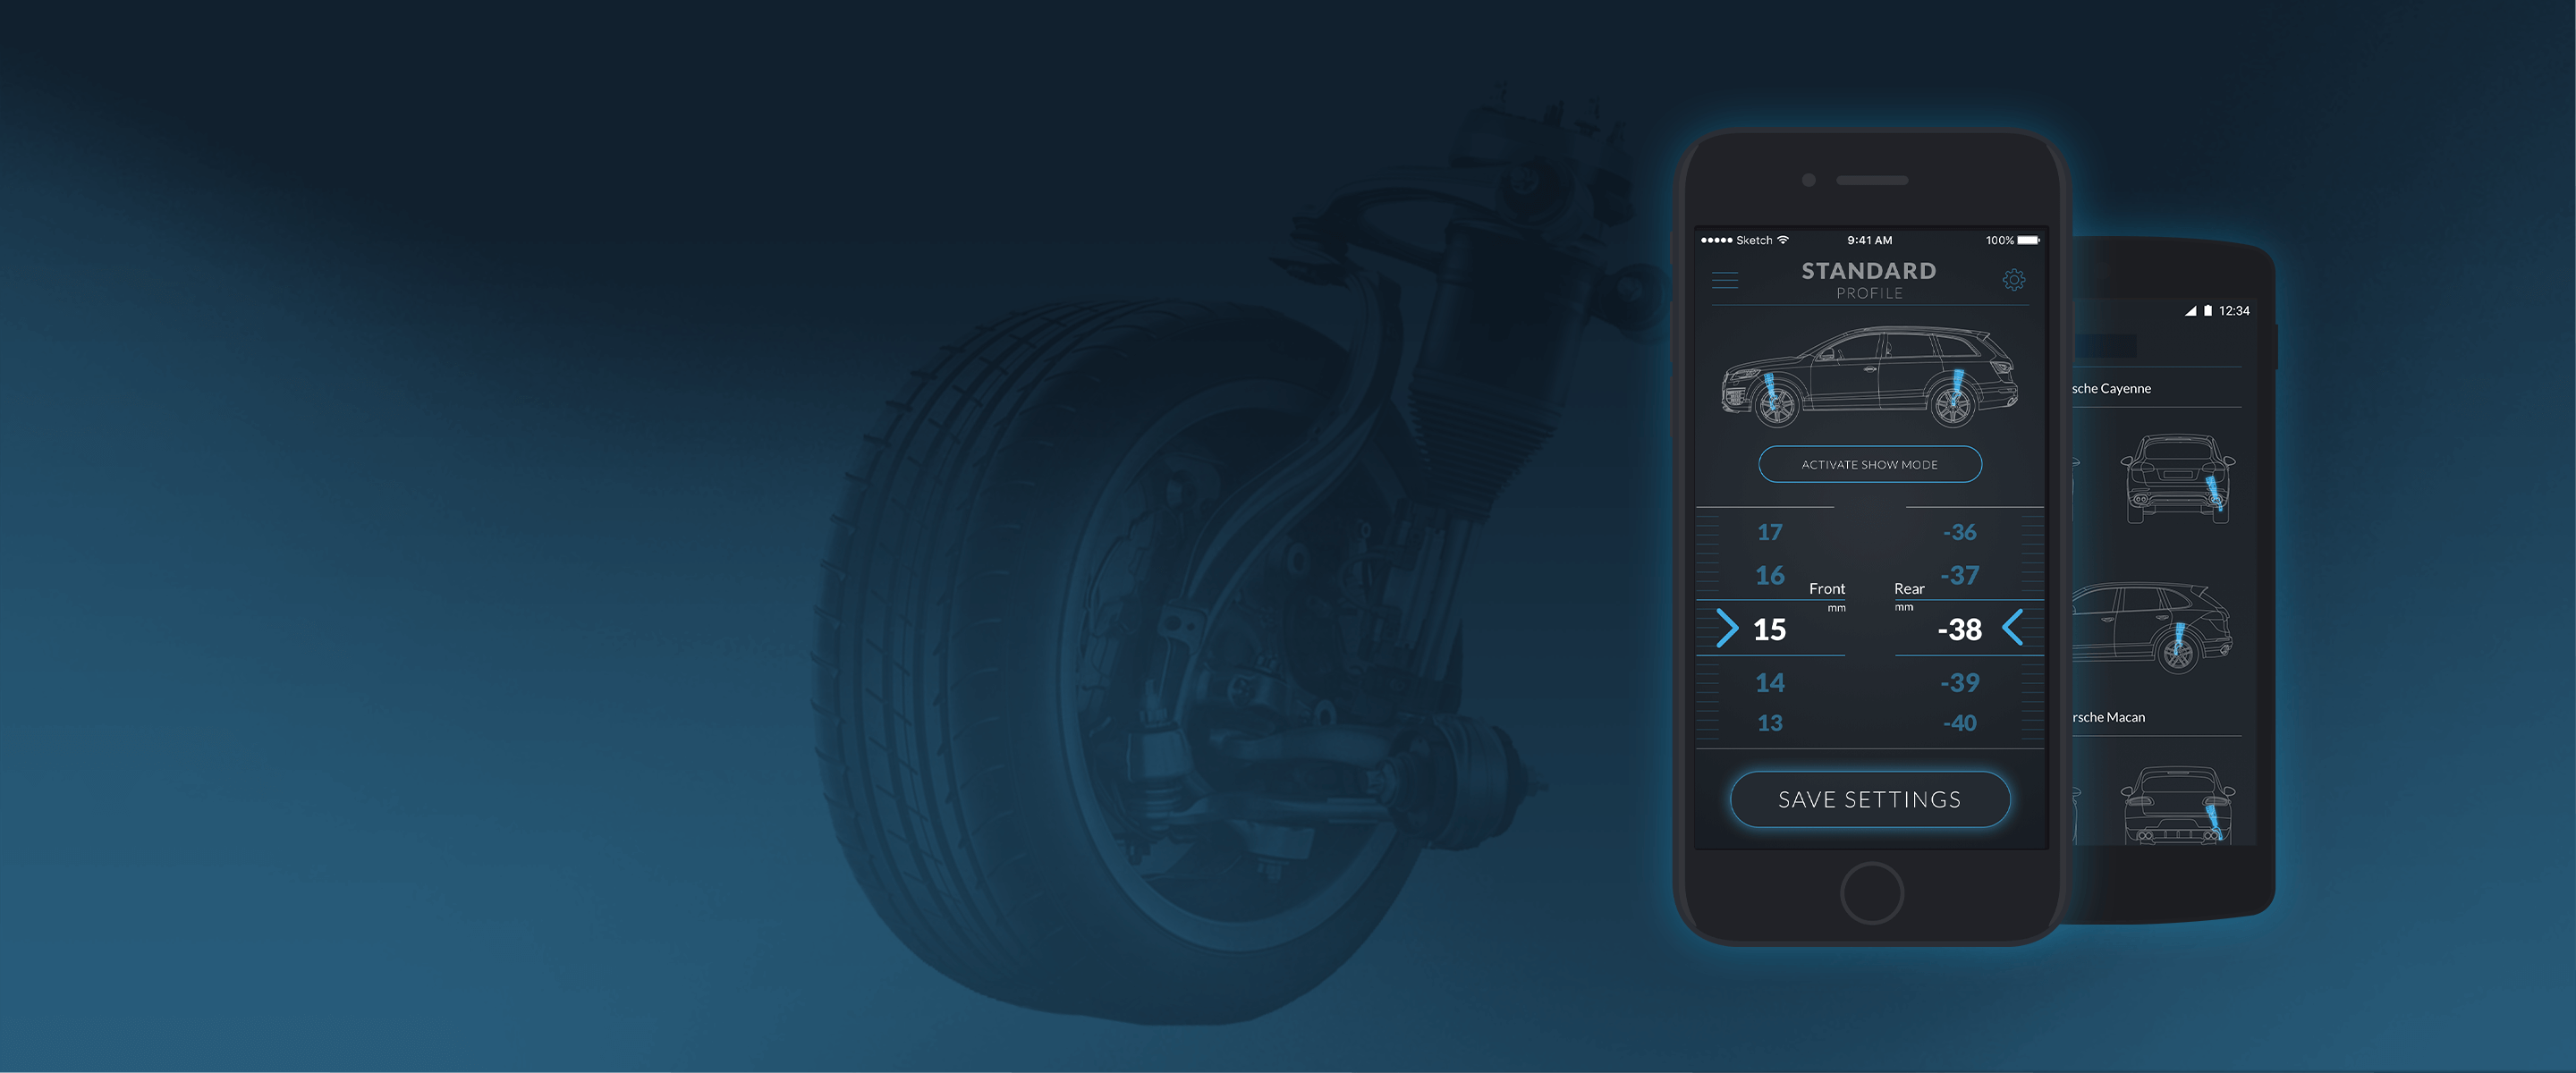 Case study: mobile IoT app development for connected cars